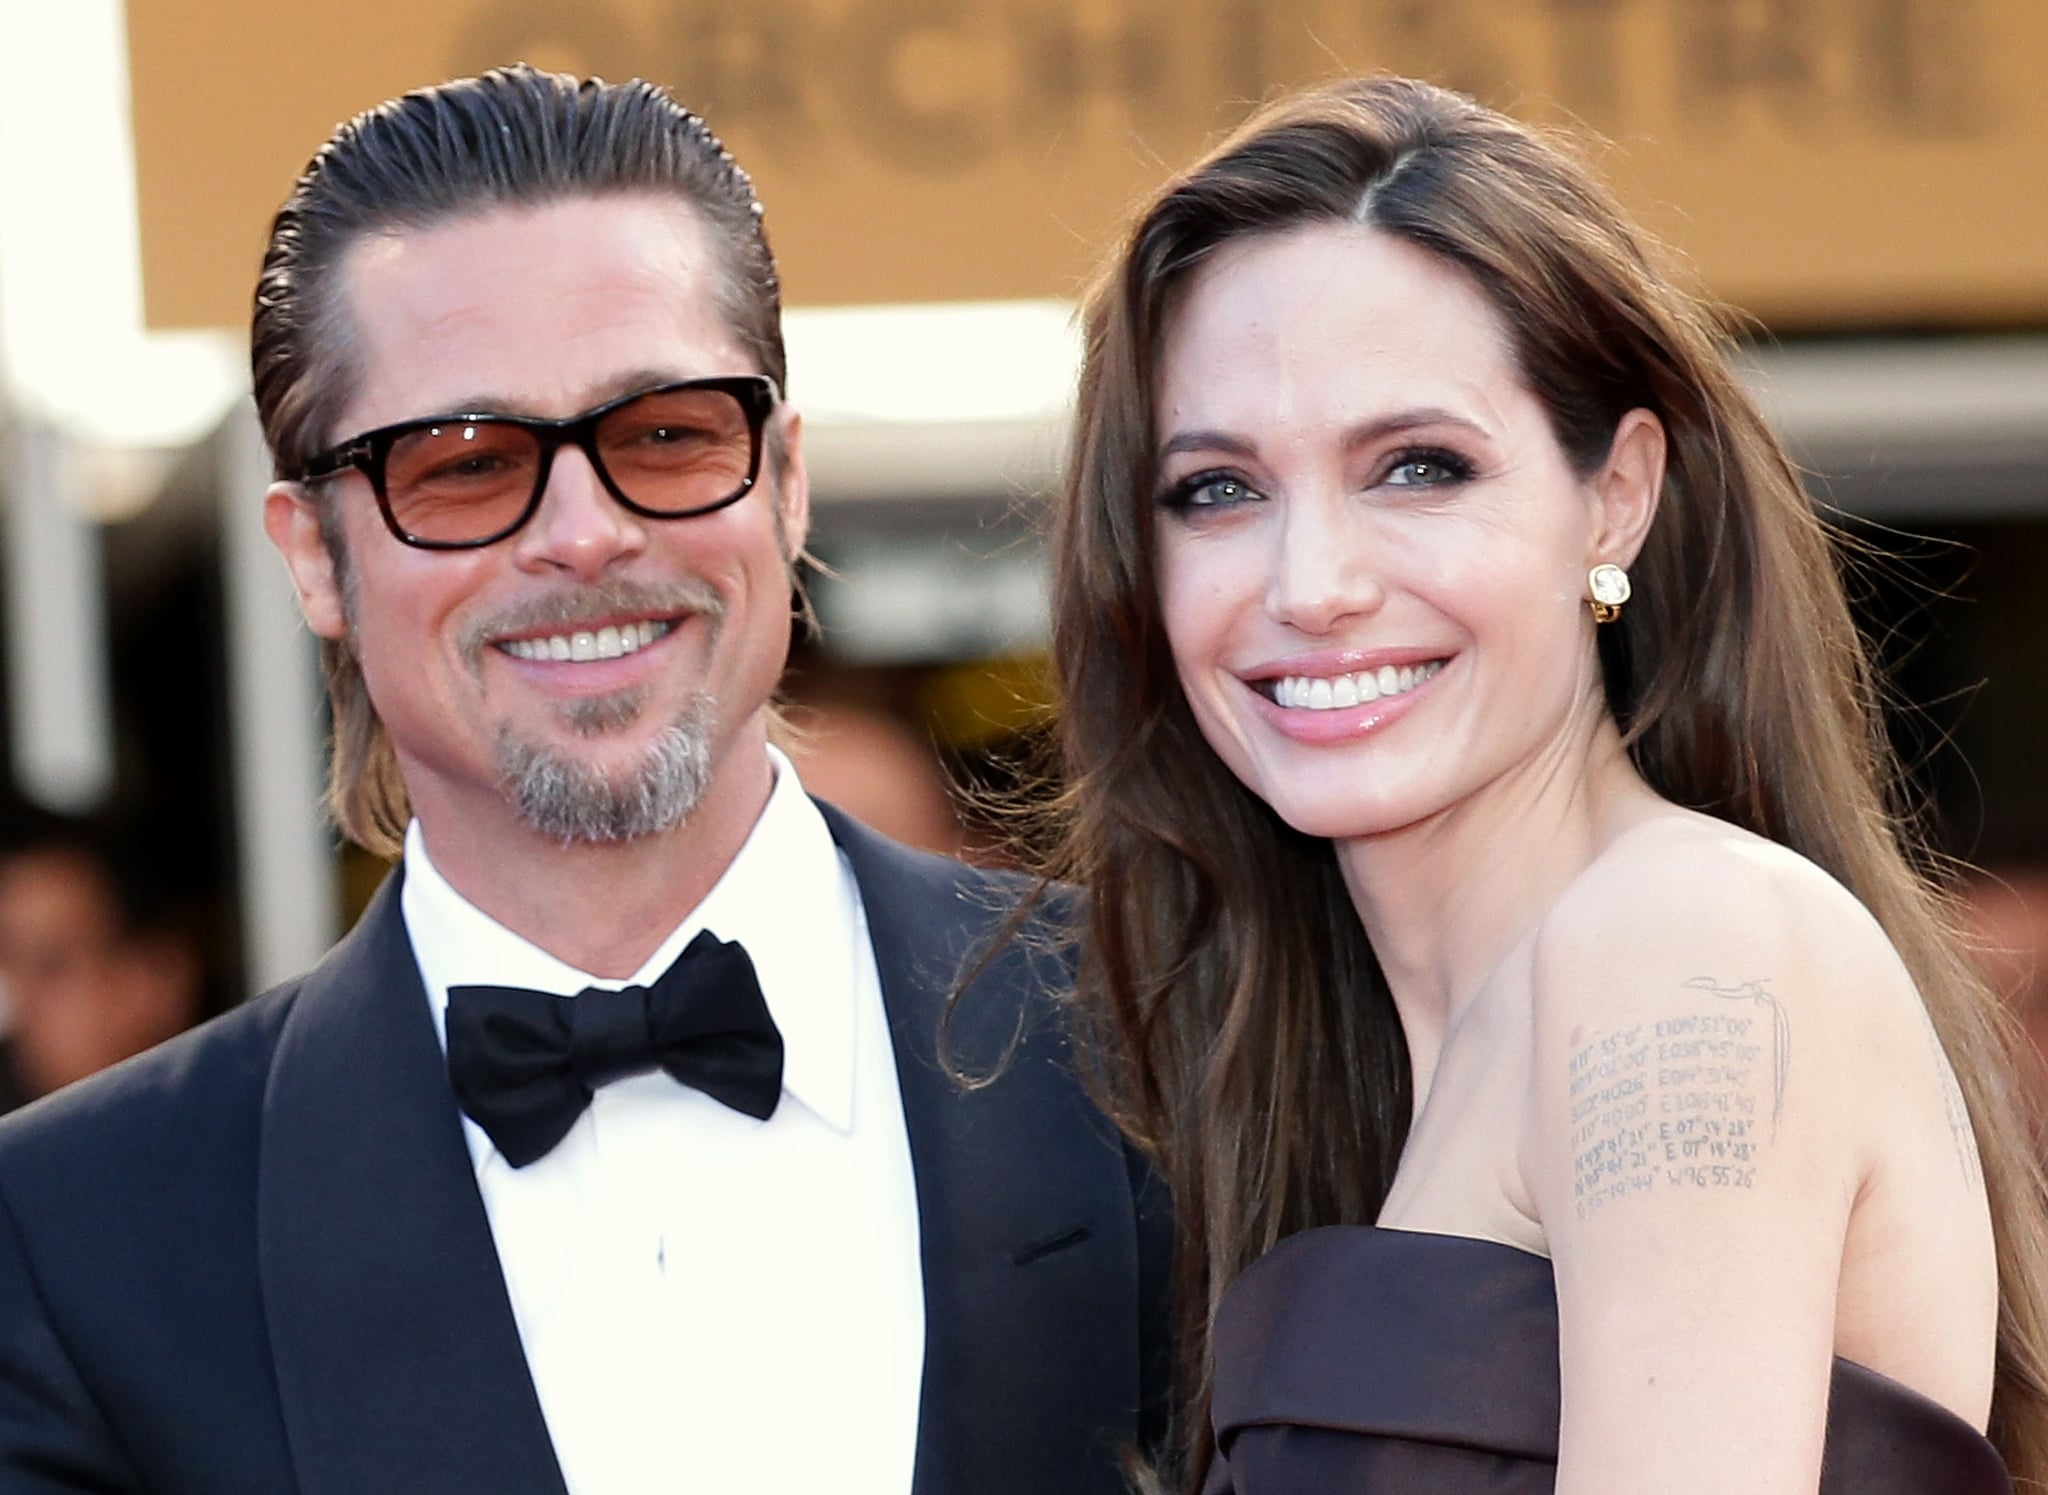 Brad Pitt and Angelina Jolie's divorce OFF?